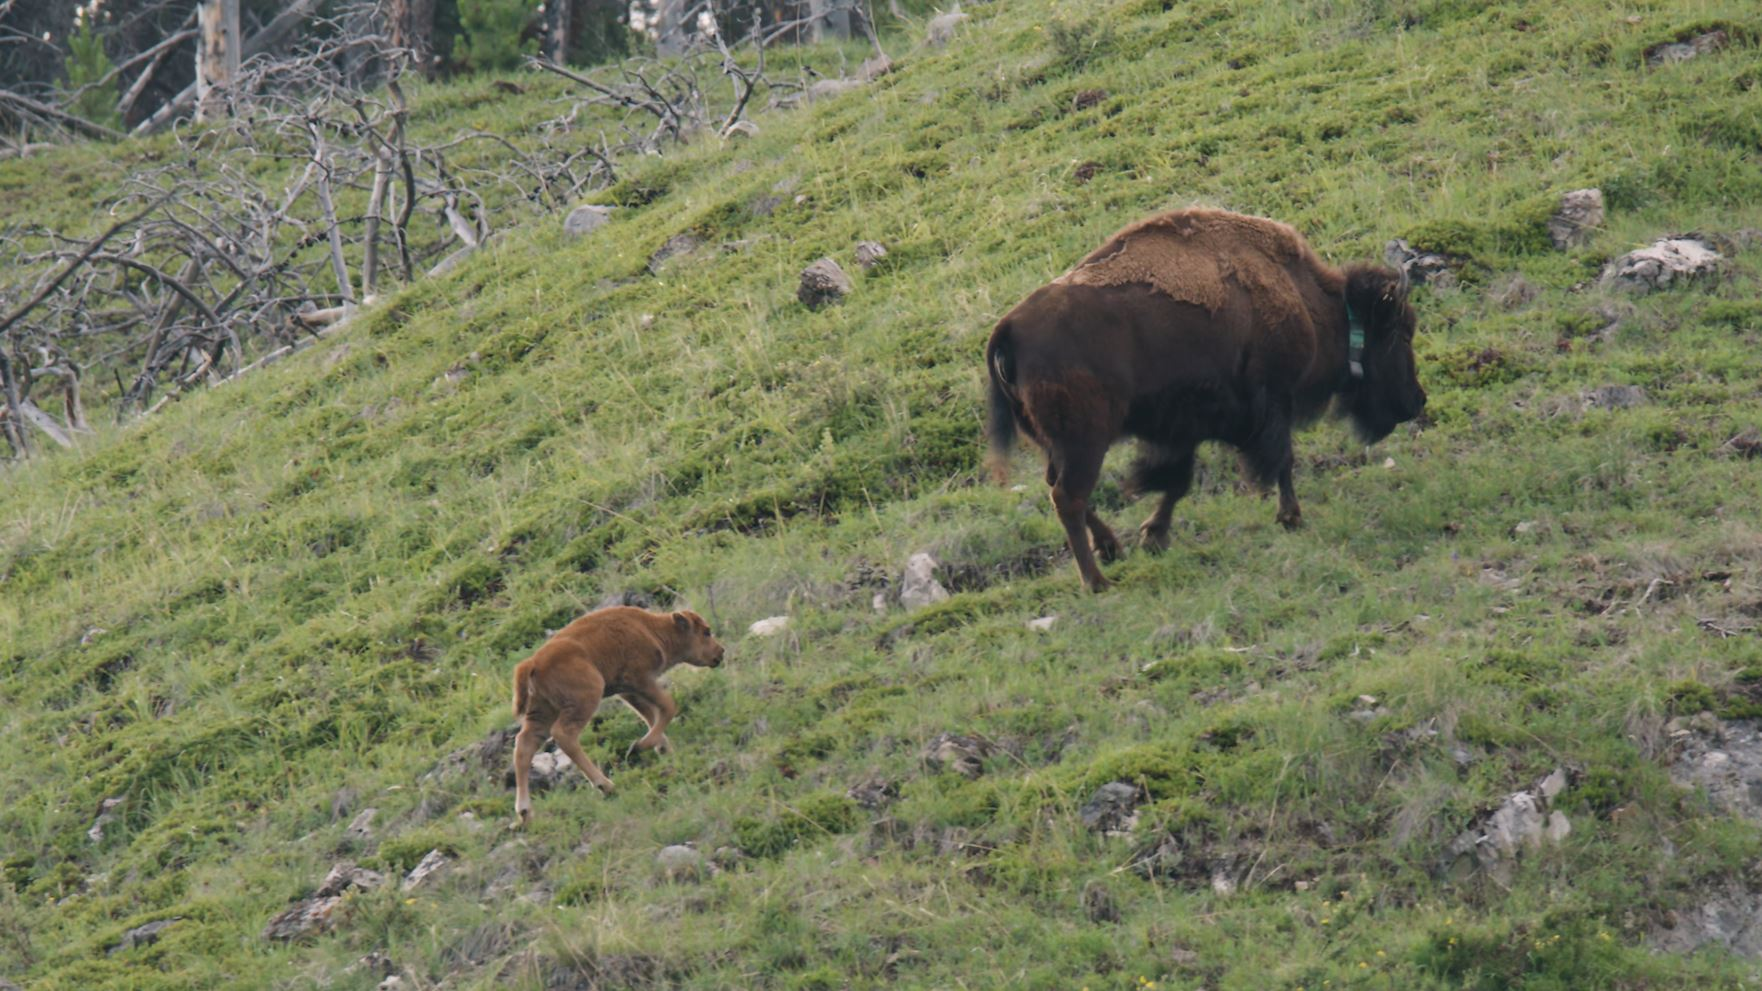 Parks Canada - Banff Bison Re-Introduction Project